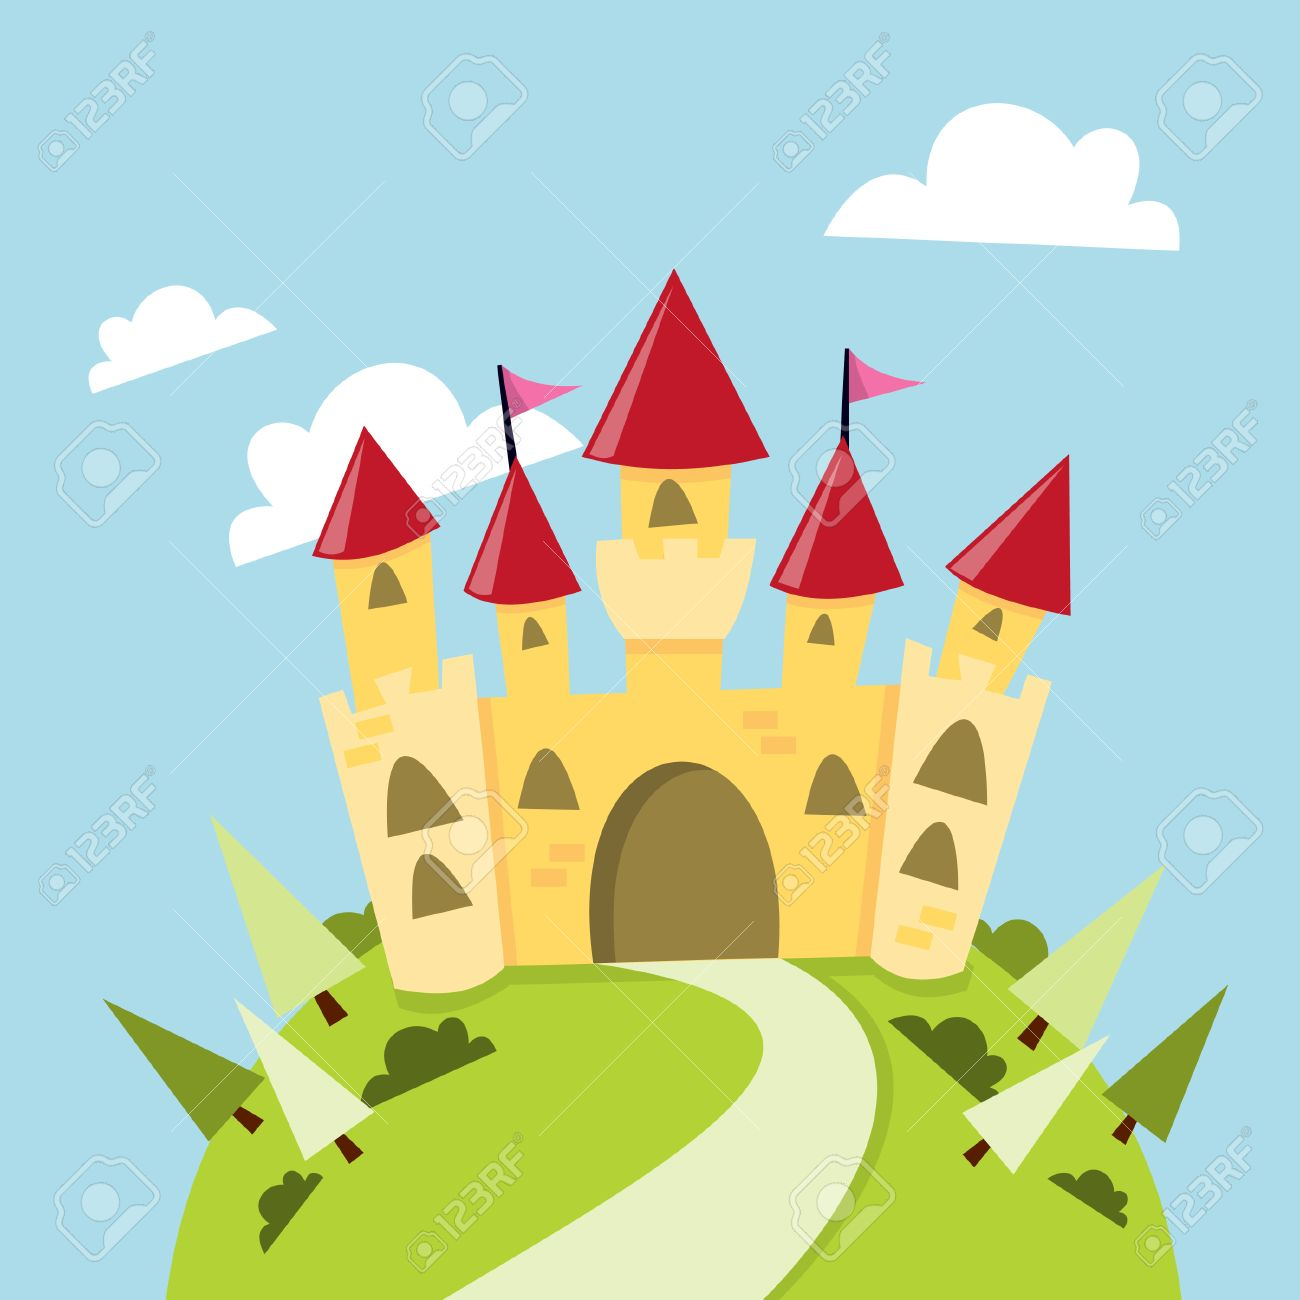 A cartoon illustration of a cute castle in the mountain. - 39135273